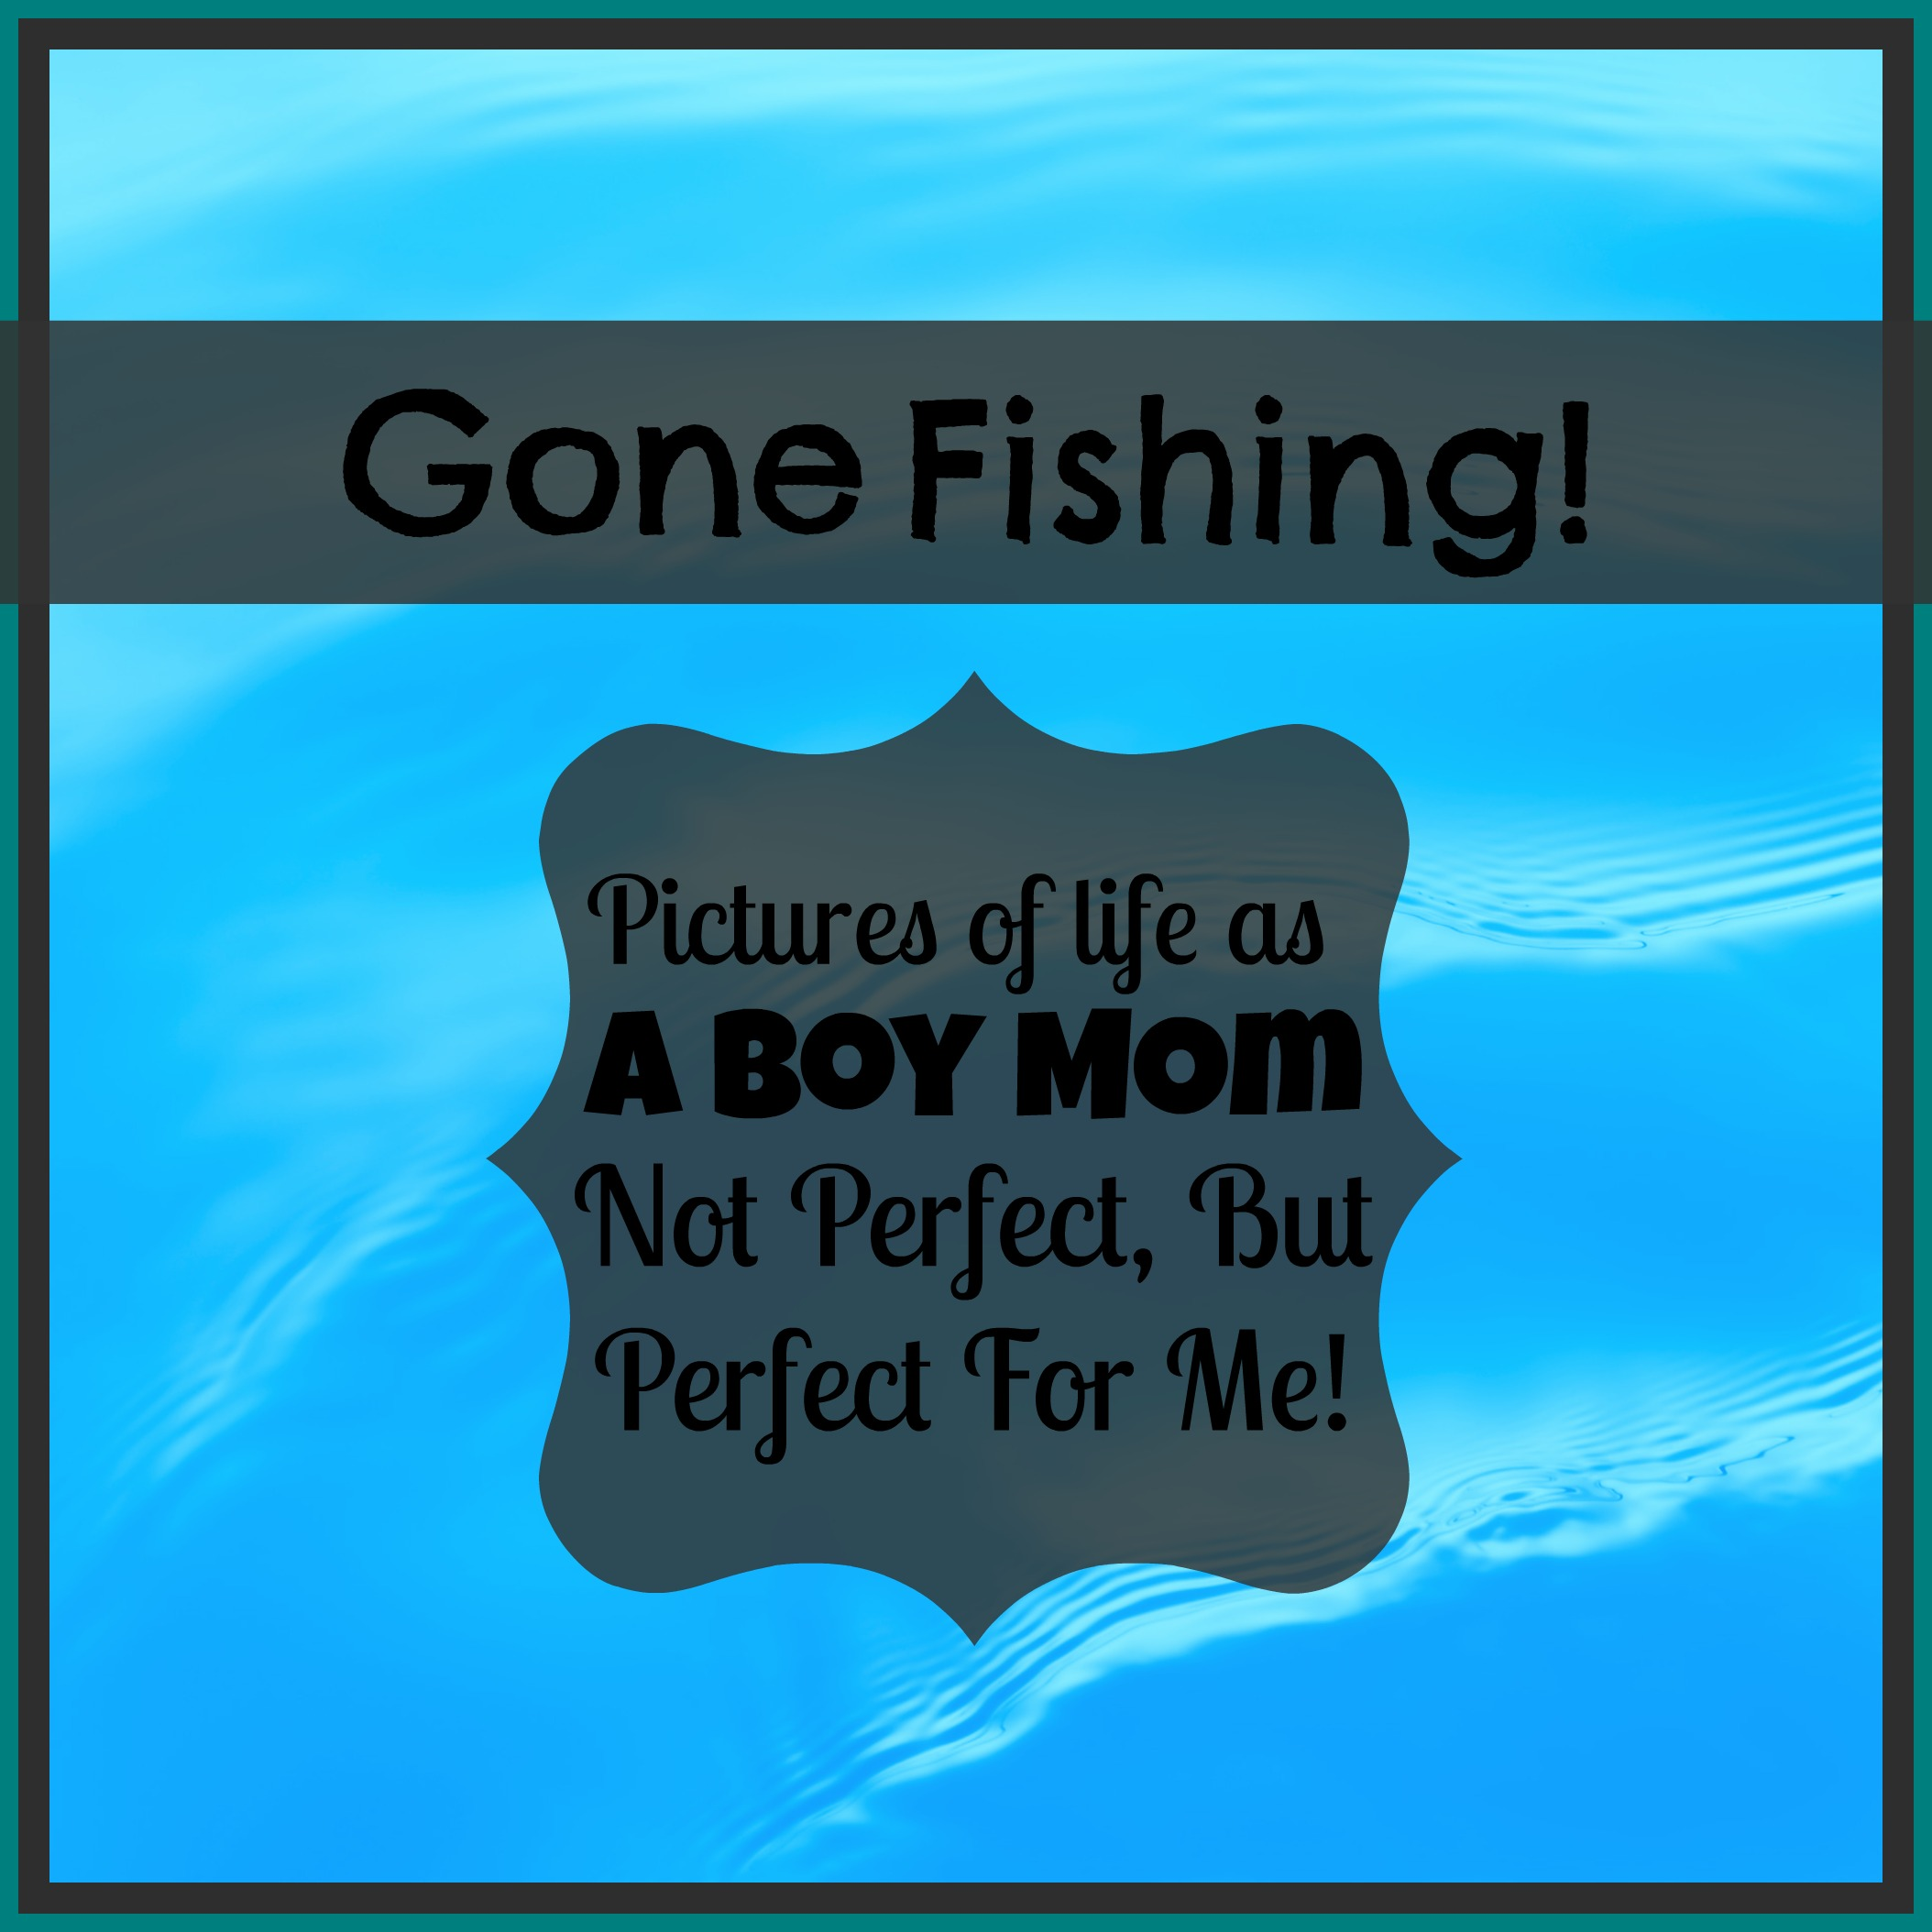 Gone Fishing! Pictures Of Life As A Boy Mom, Not Perfect, But Perfect For Me!